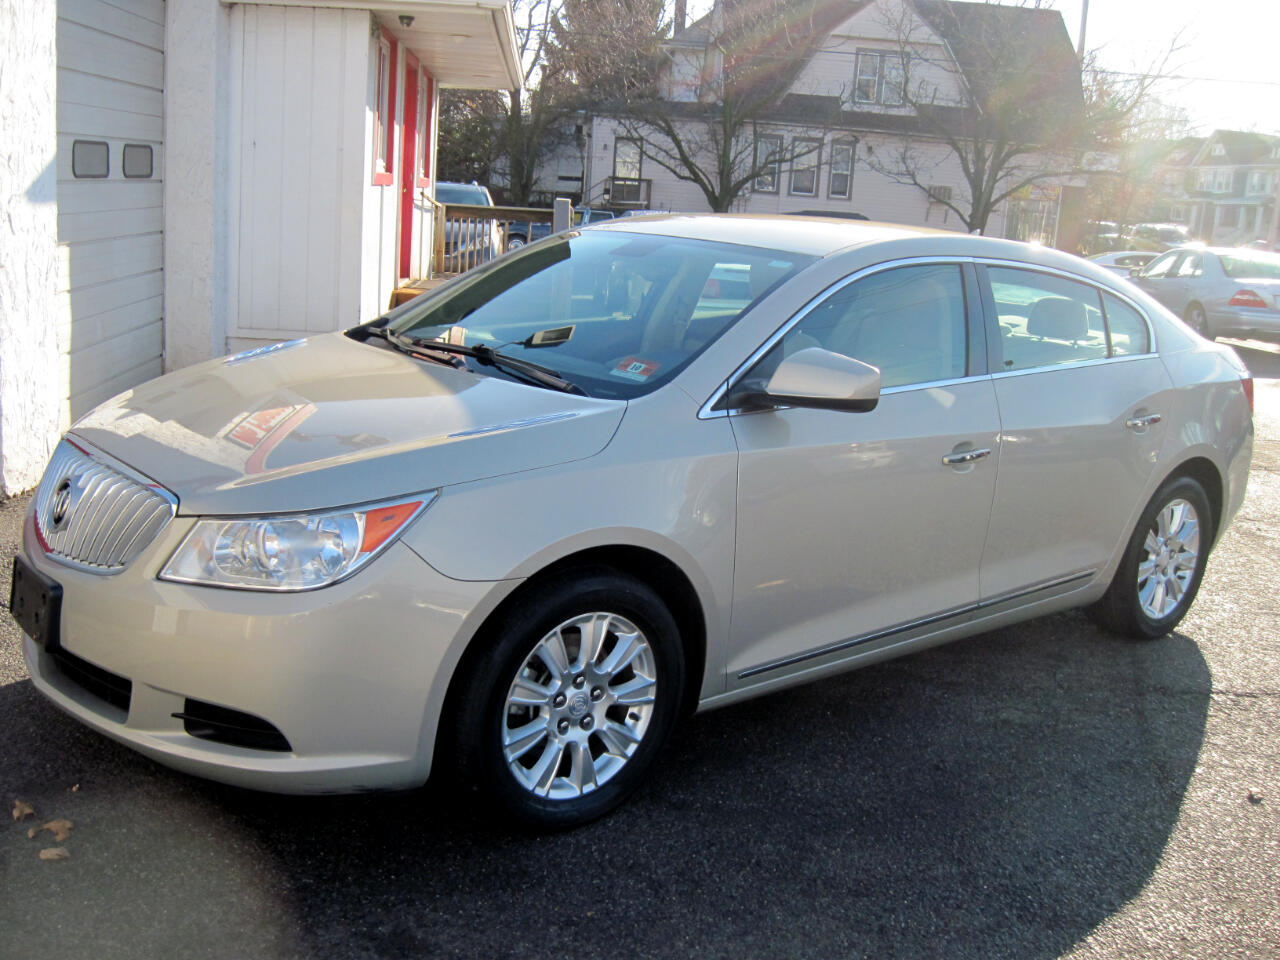 2012 Buick LaCrosse 4dr Sdn Convenience FWD